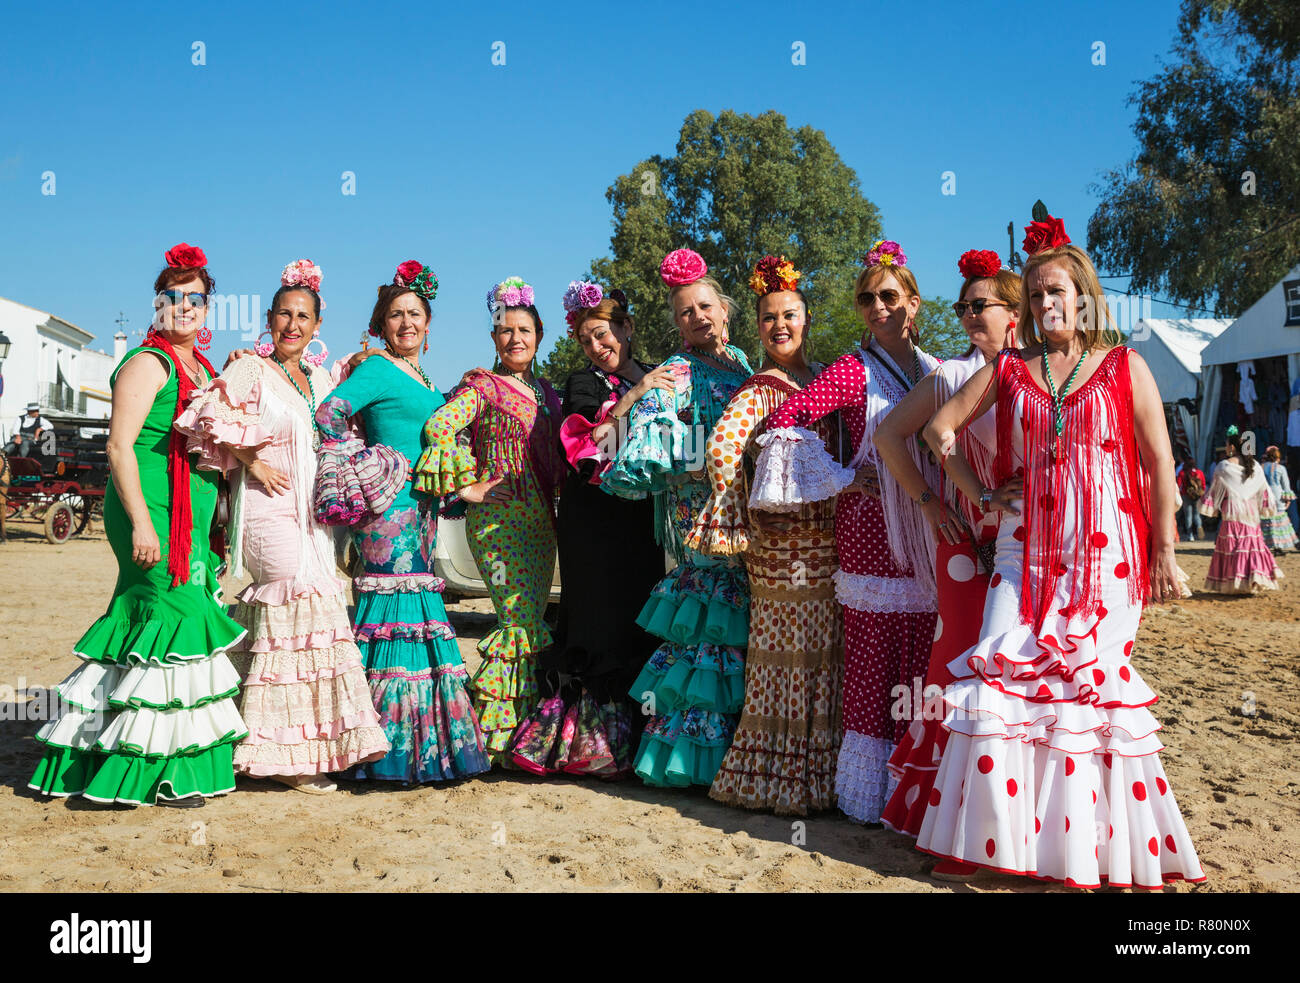 Women wearing beautifully coloured gypsy dresses during the annual Pentecost pilgrimage of El Rocio. Huelva province, Andalusia, Spain. - Stock Image